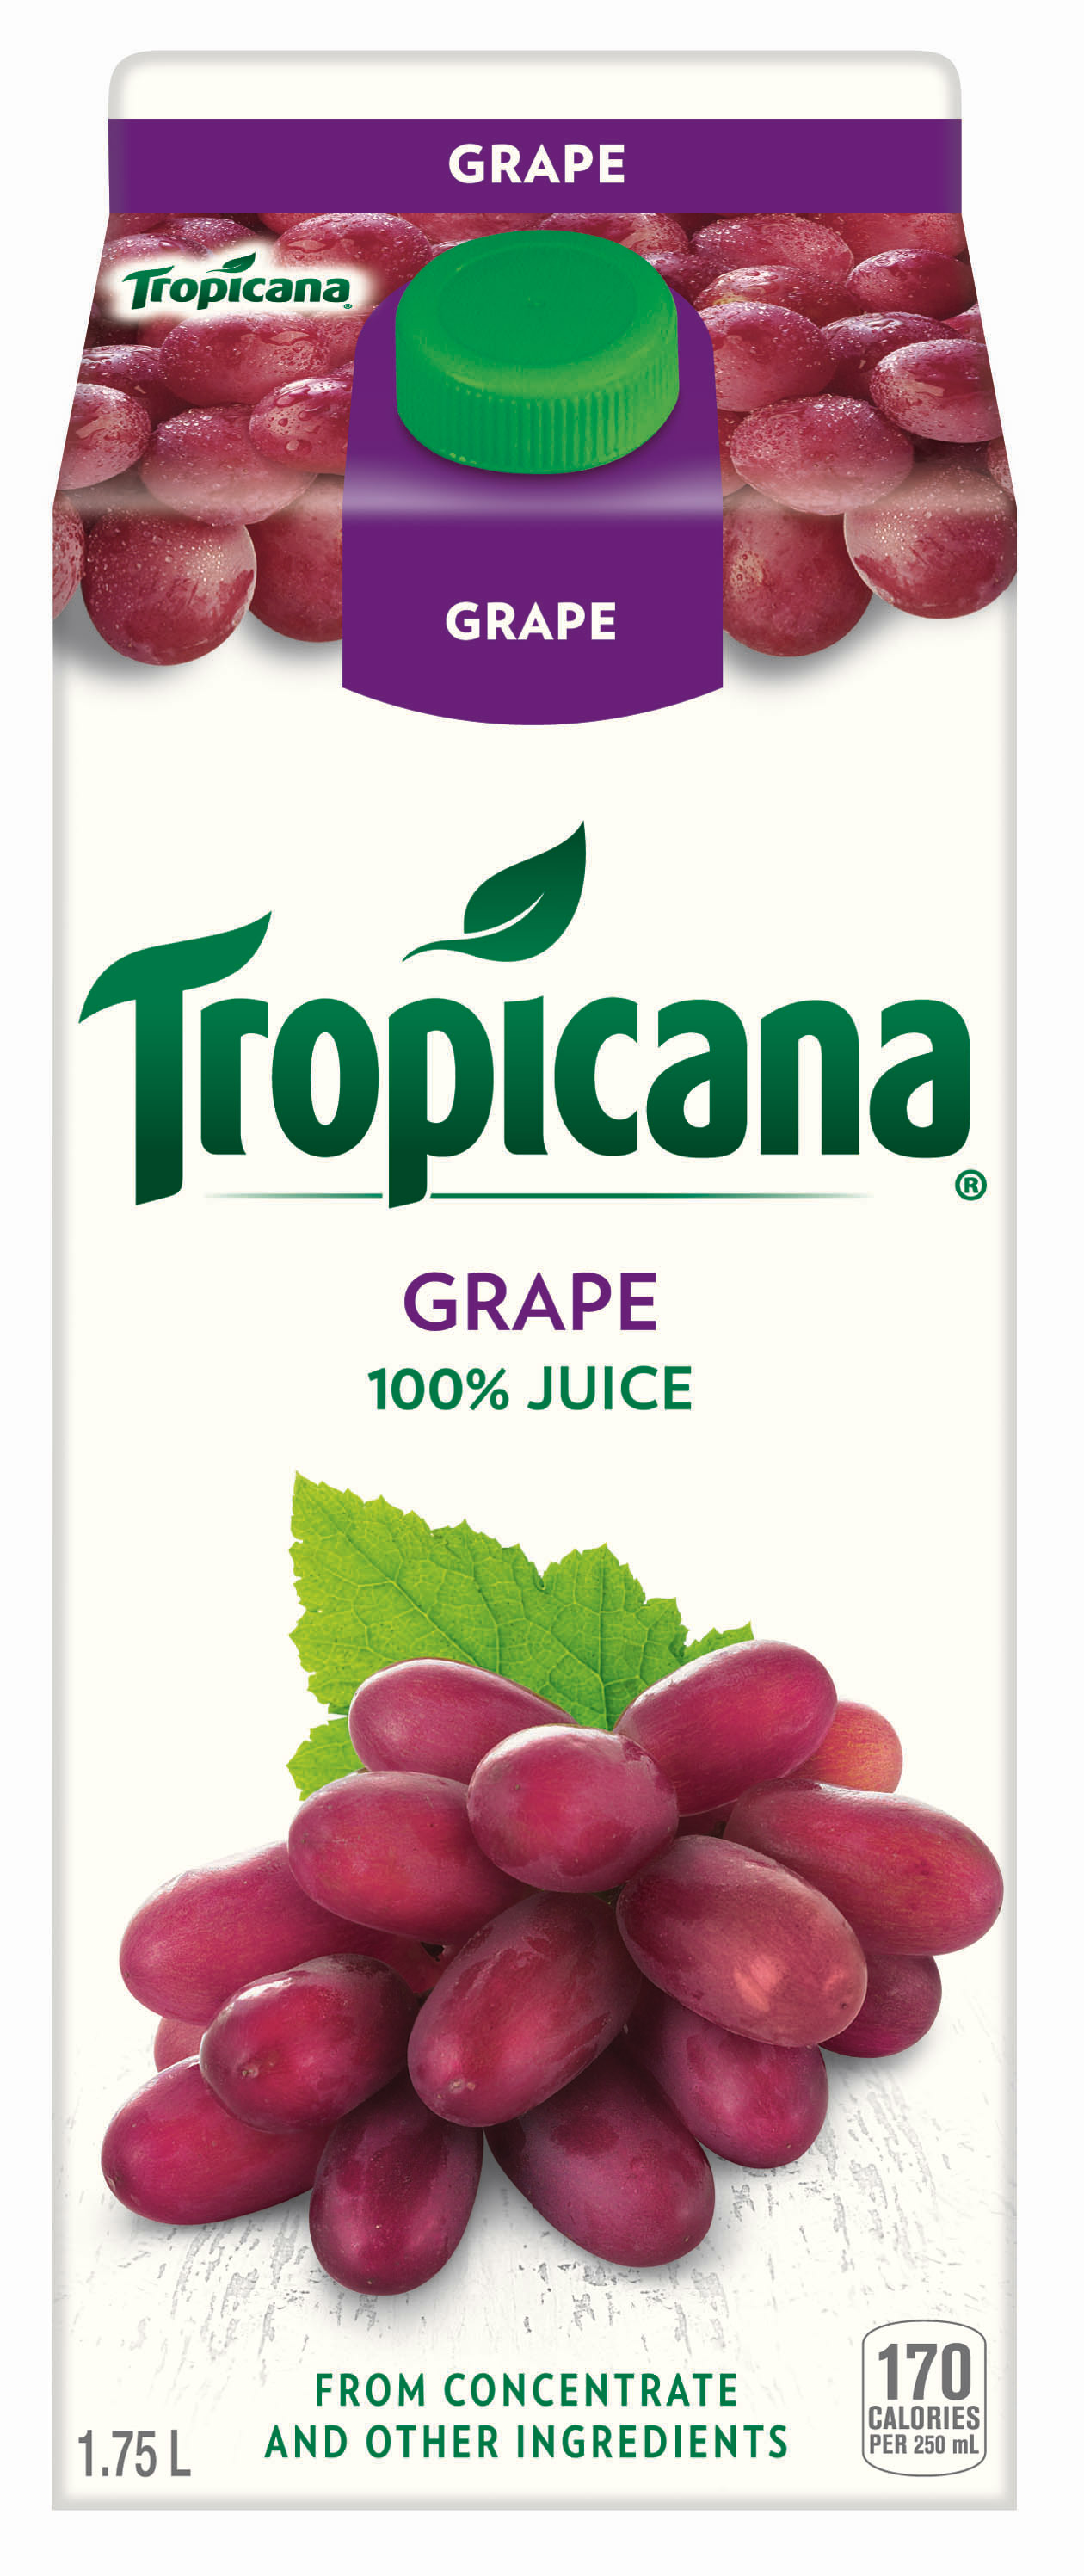 Tropicana® Grape 100% Juice from Concentrate